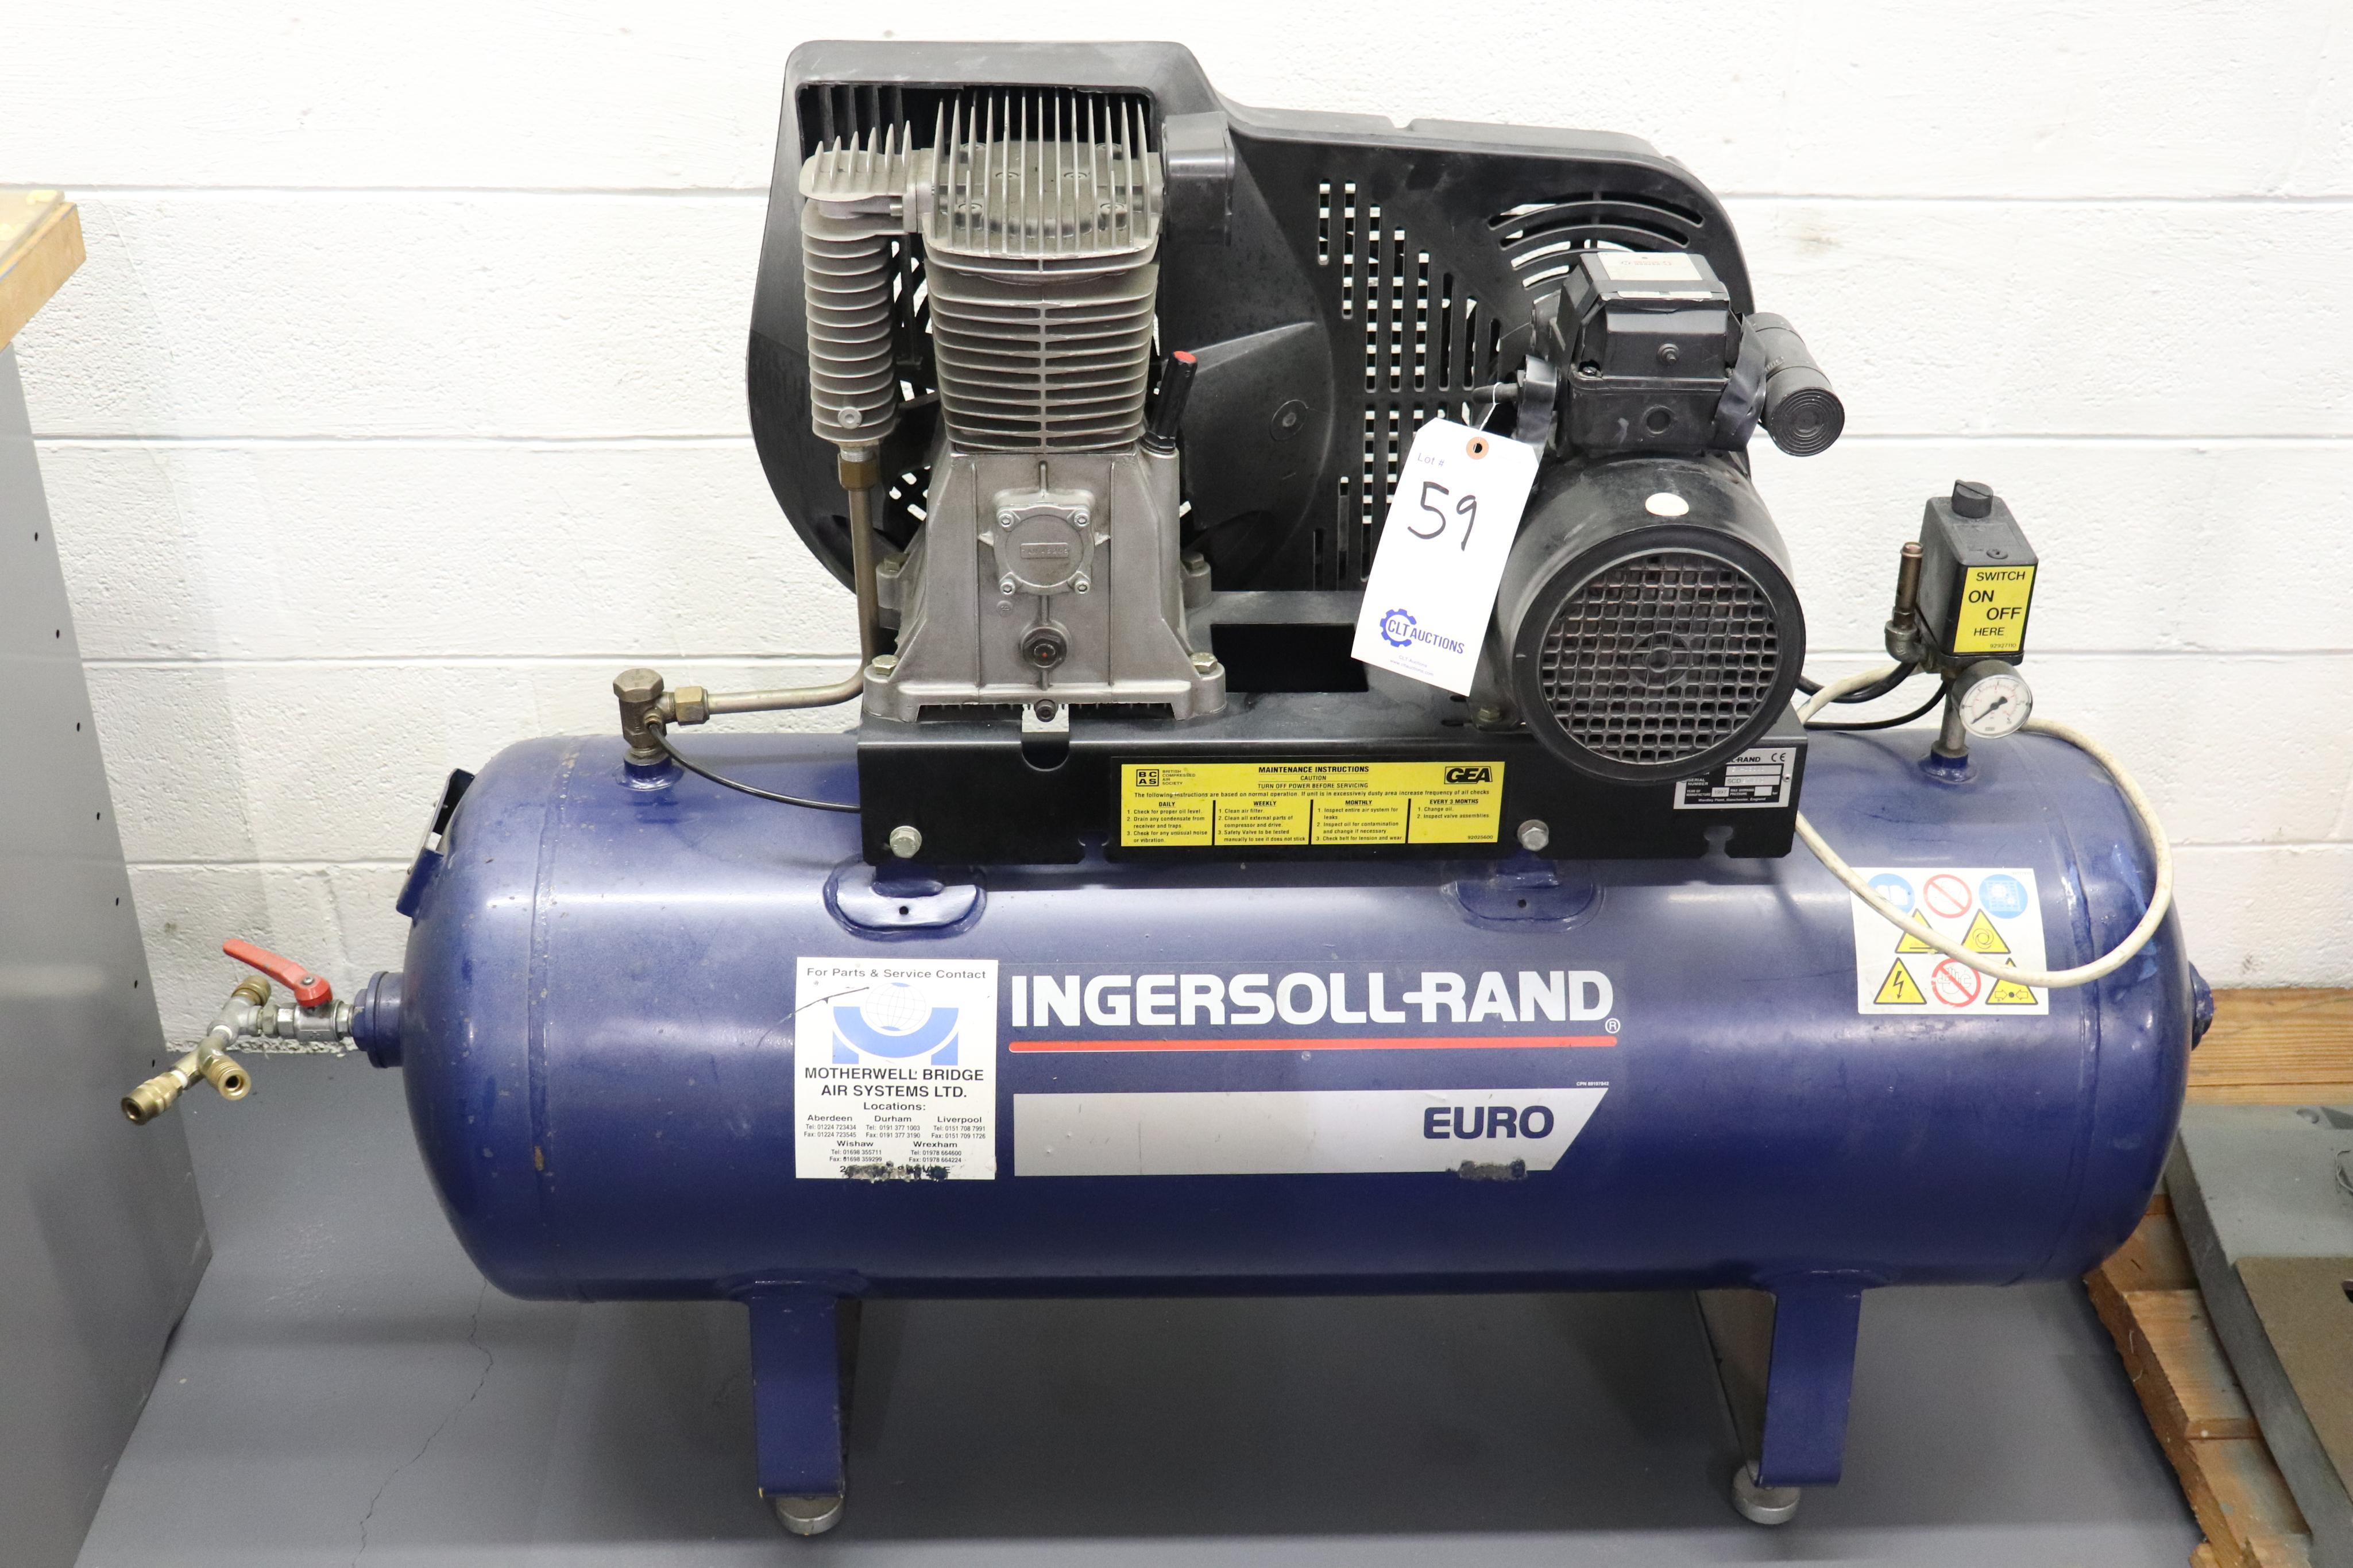 Ingersoll-Rand Euro 2.2KW air compressor *has bad switch*